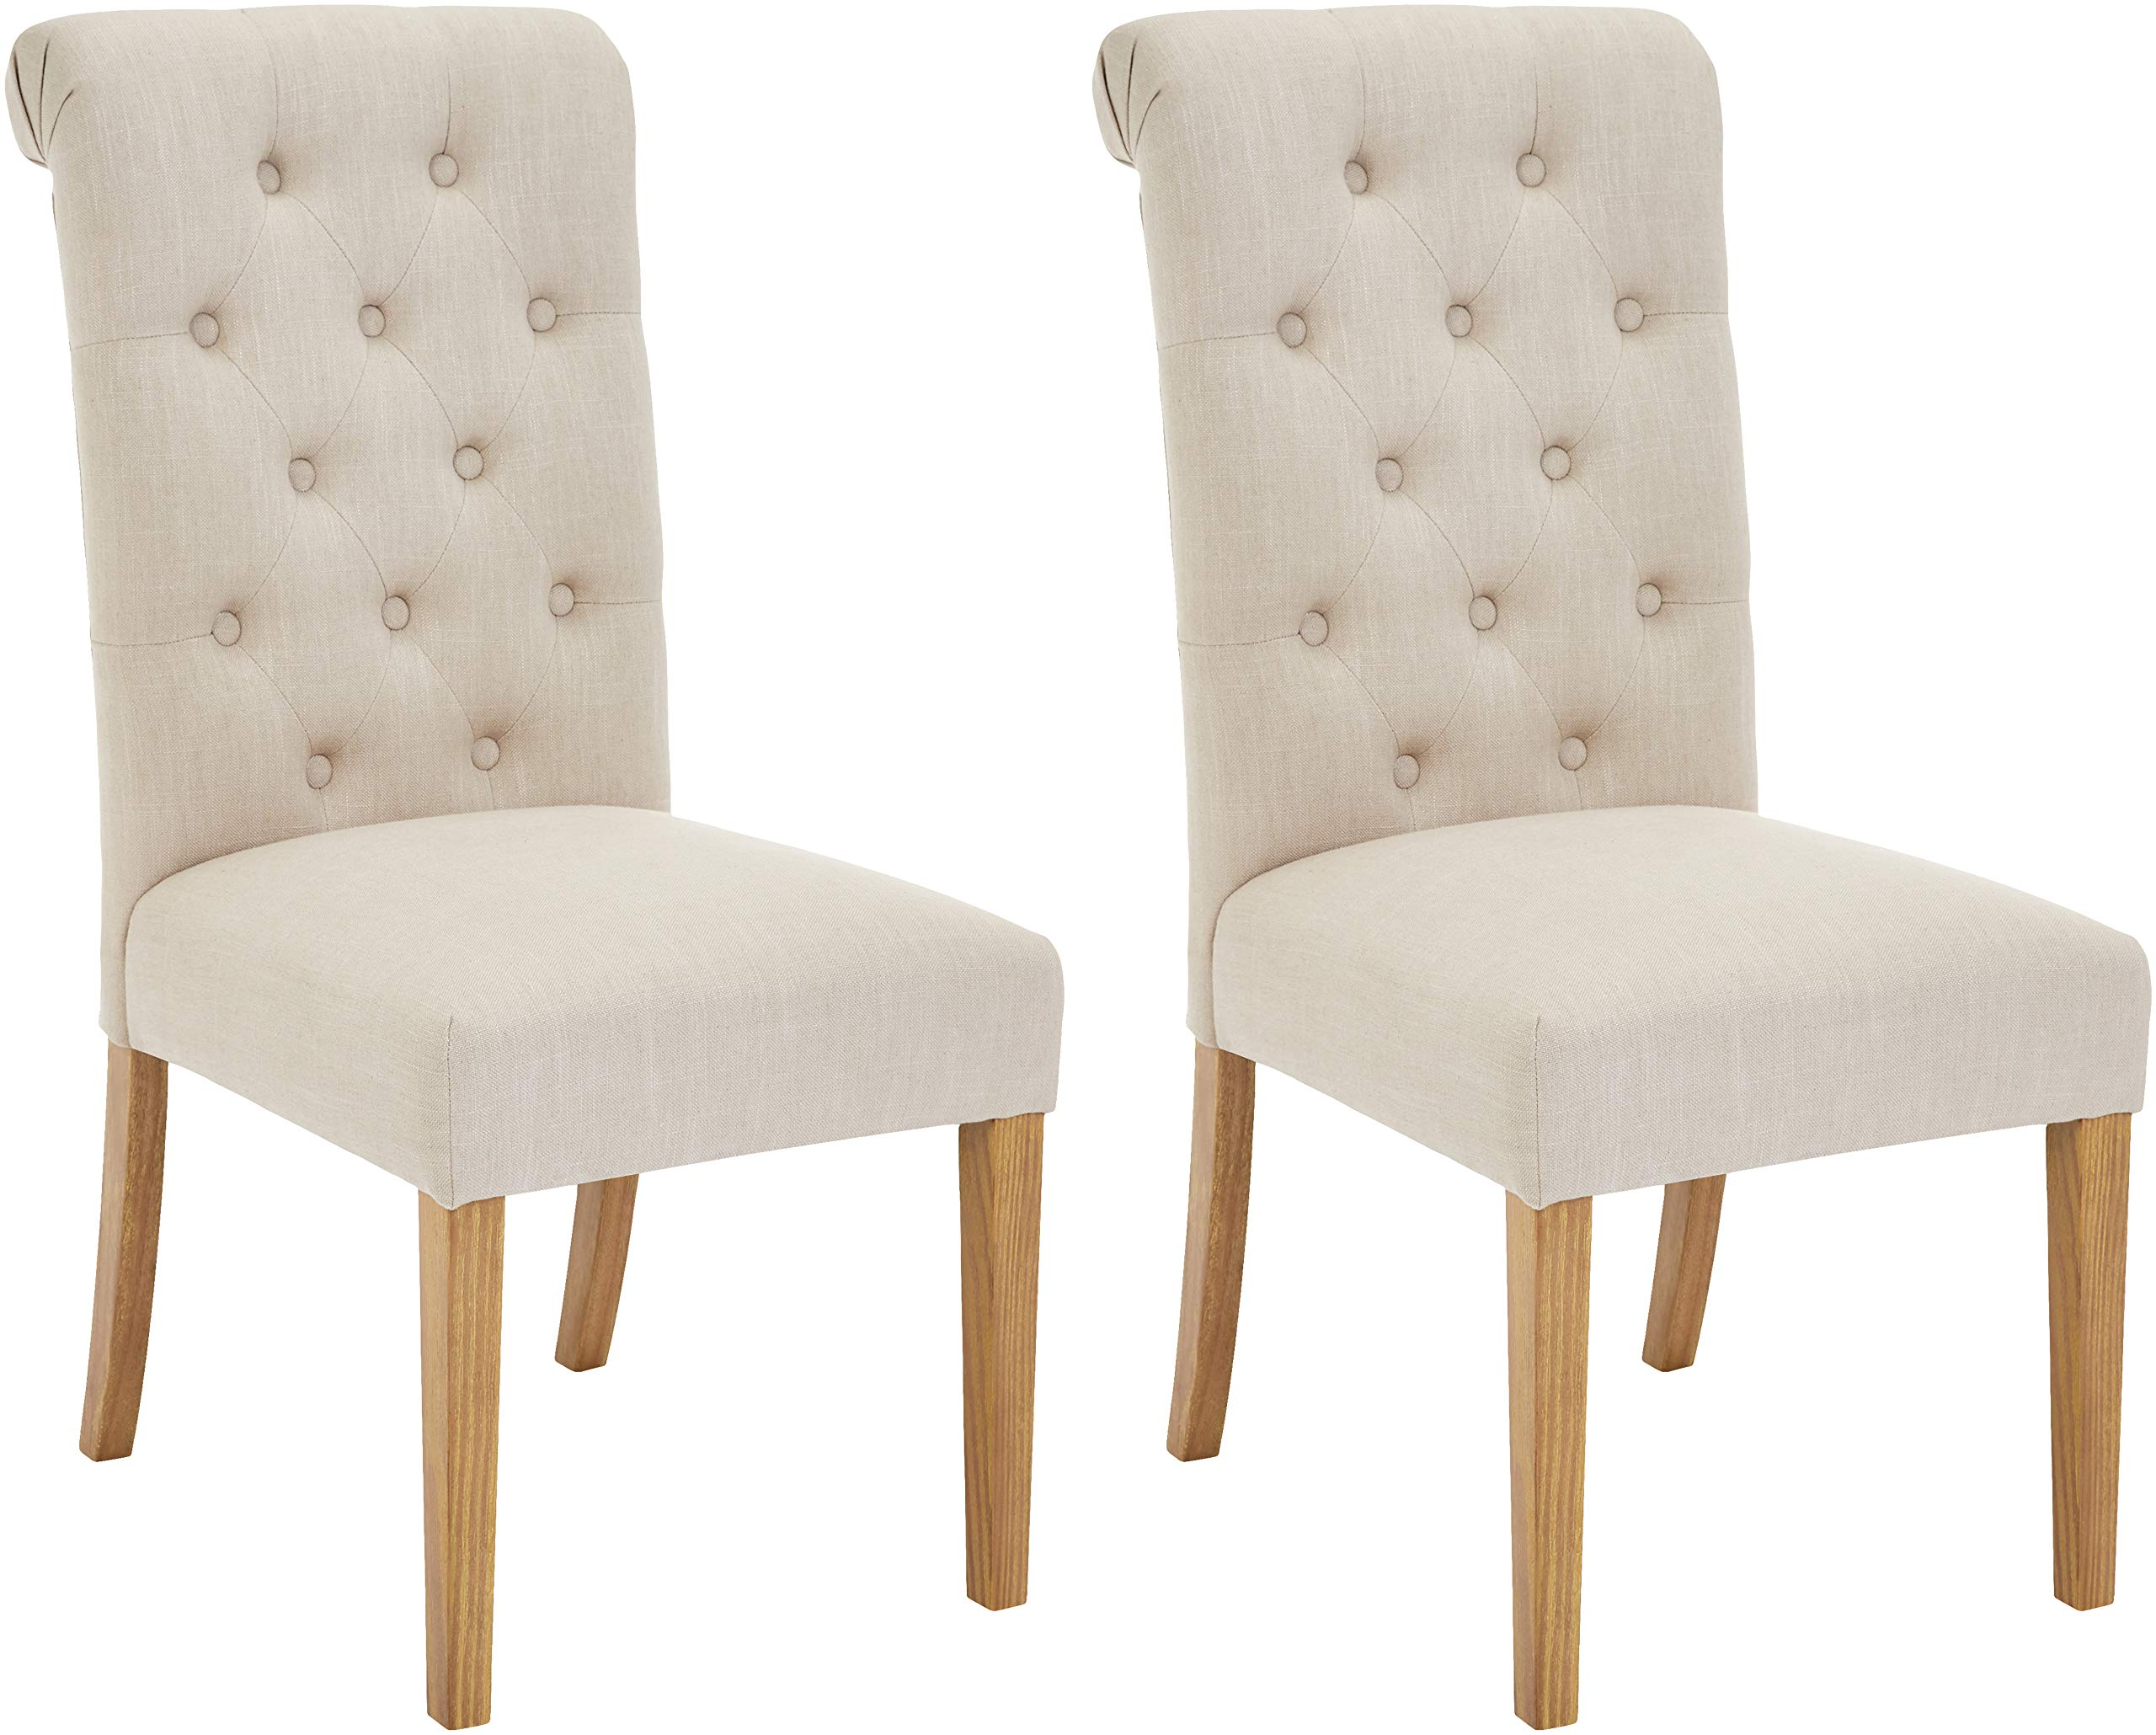 Upholstered Dining Chairs Light Wood Chair Pads Amp Cushions